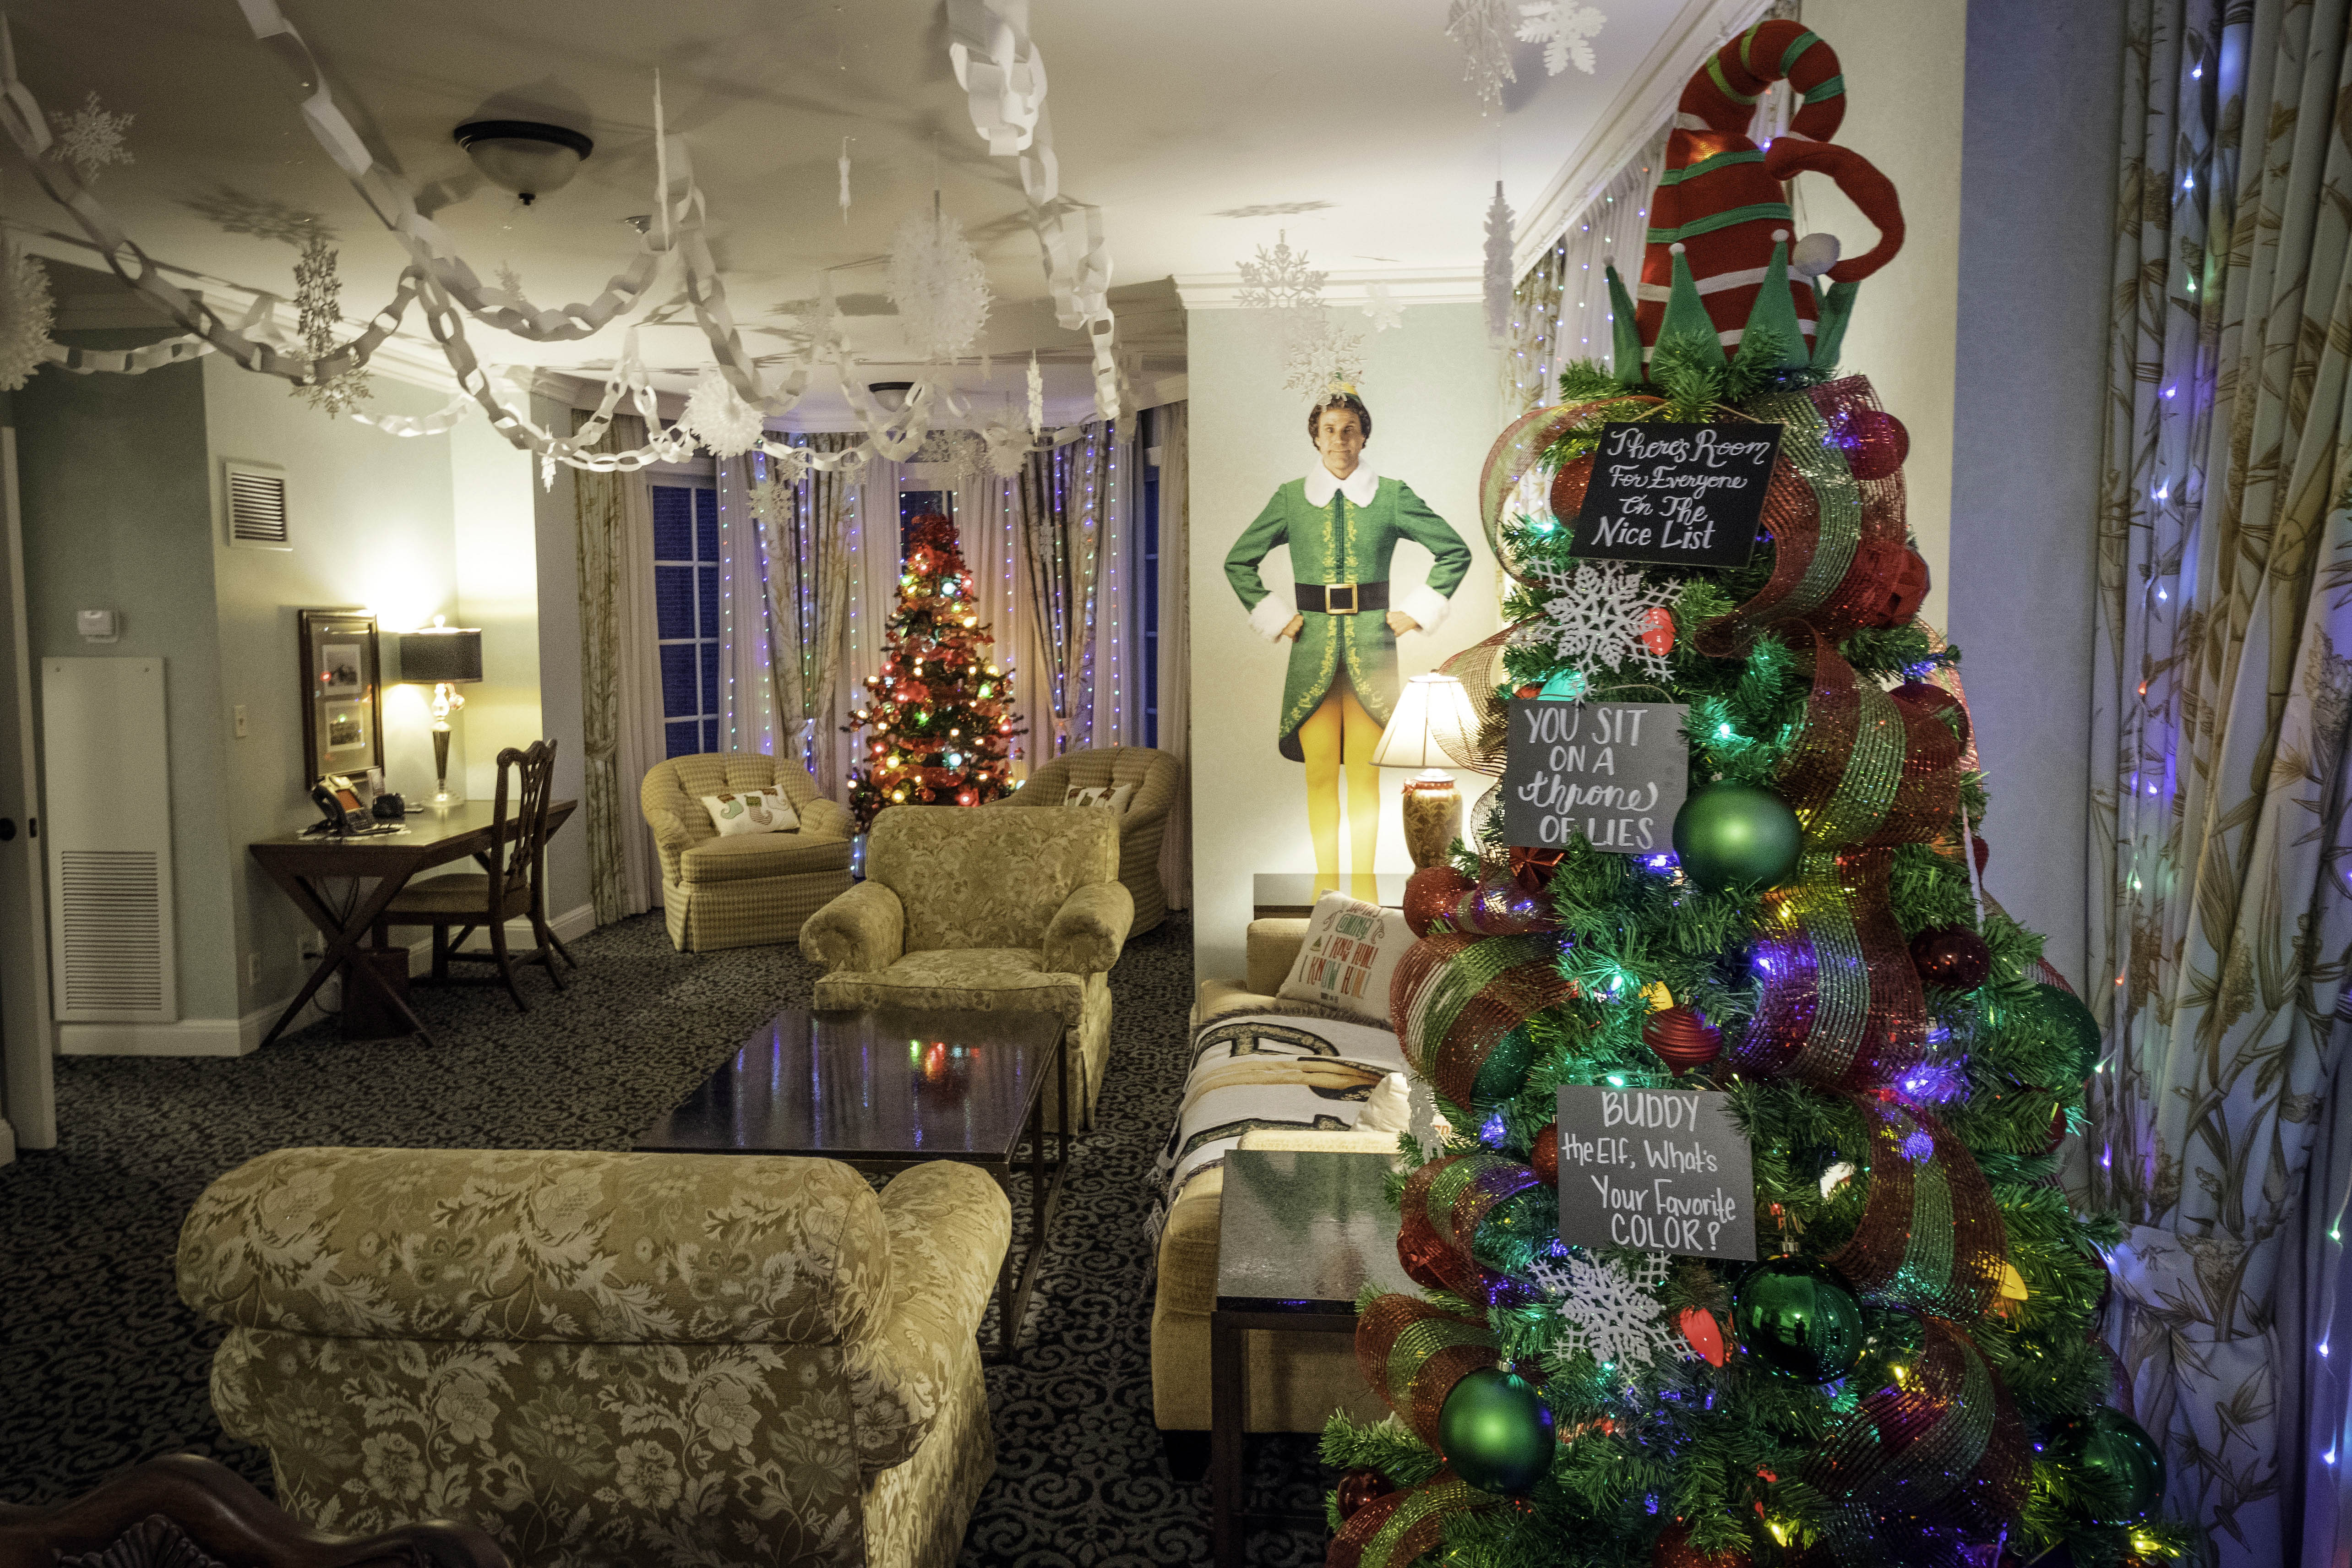 Buddy The Elf Themed Suite At Royal Park Hotel Newsnation Now